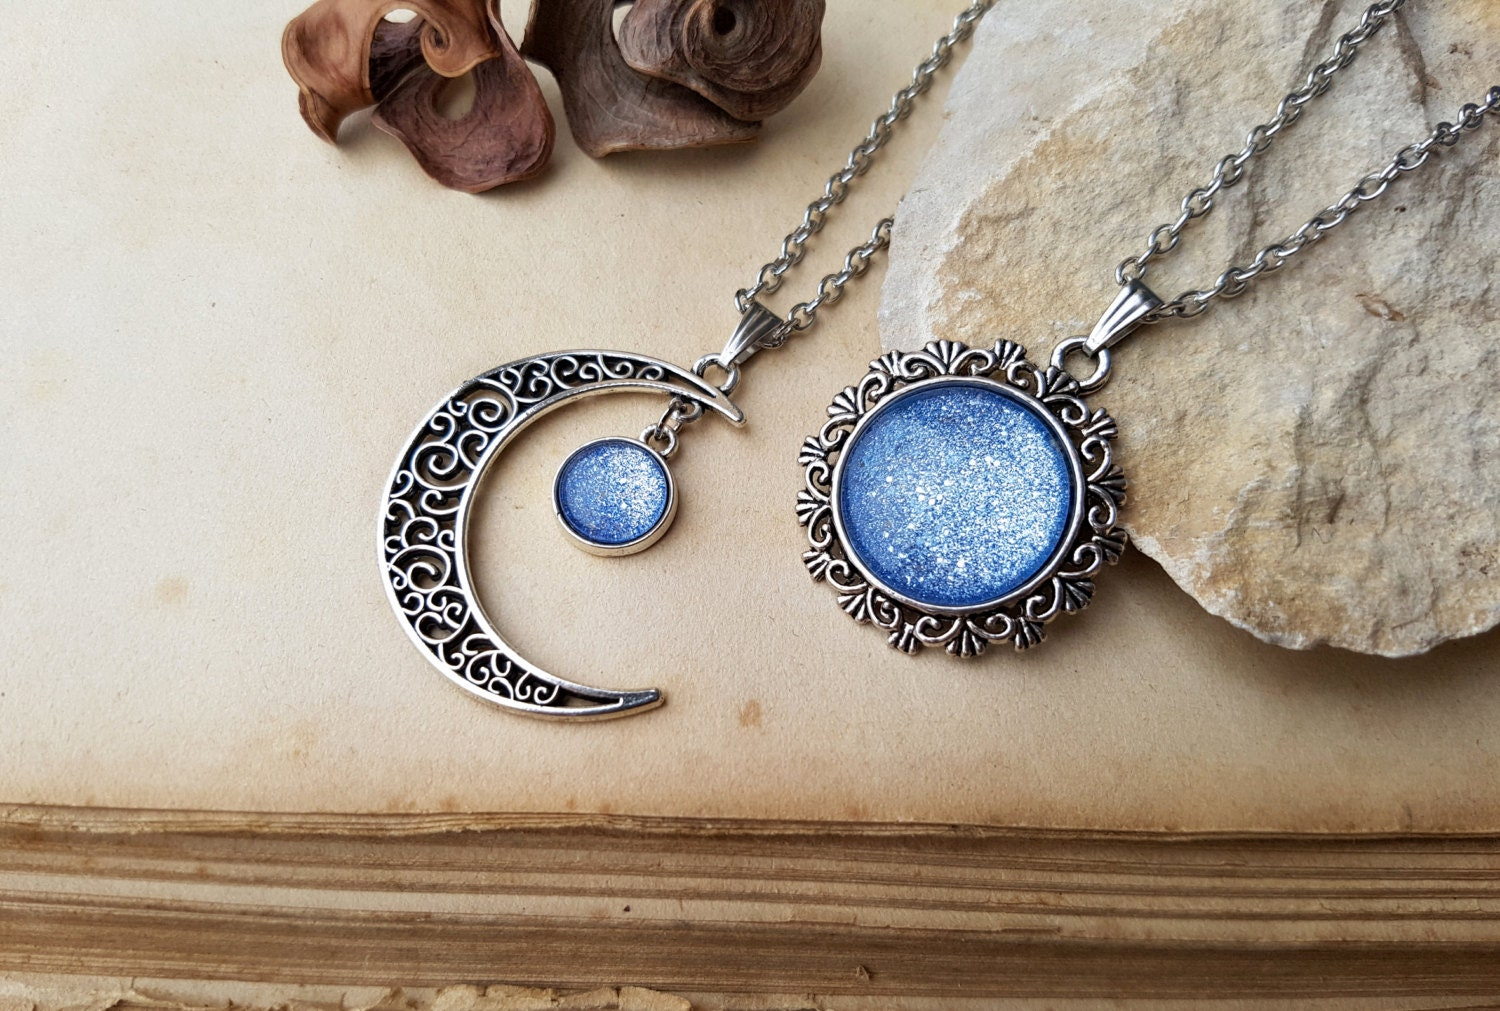 2 Moon and Sun Necklaces matching necklaces best friends